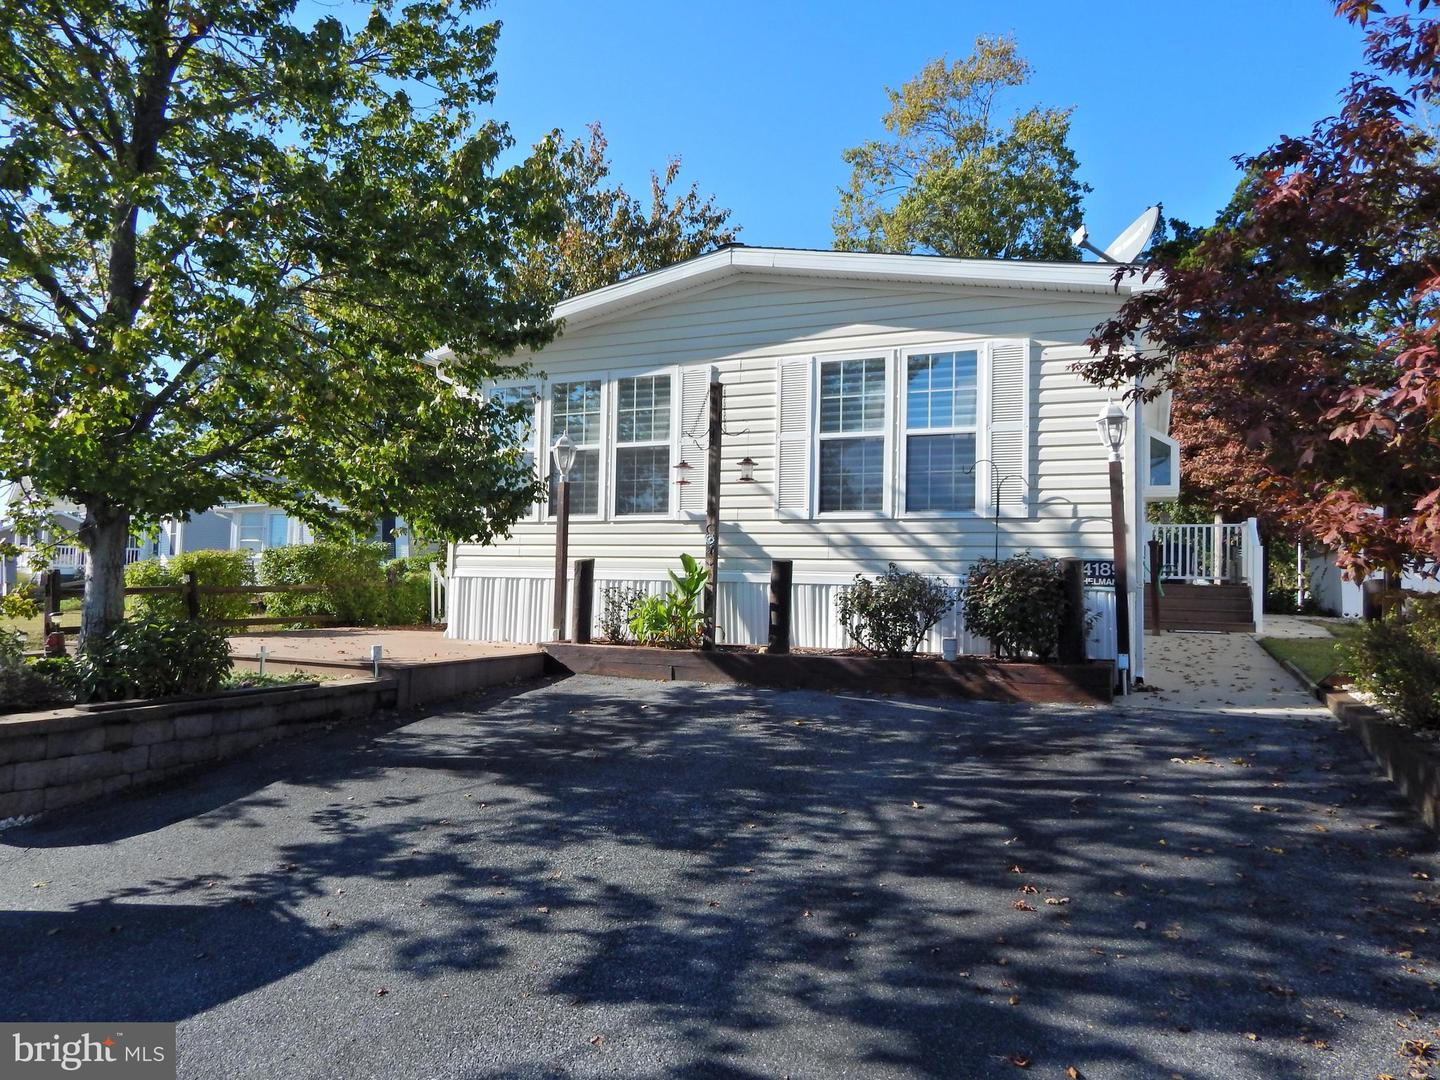 View this Millsboro, Delaware Listing - Real Estate and Home Sales